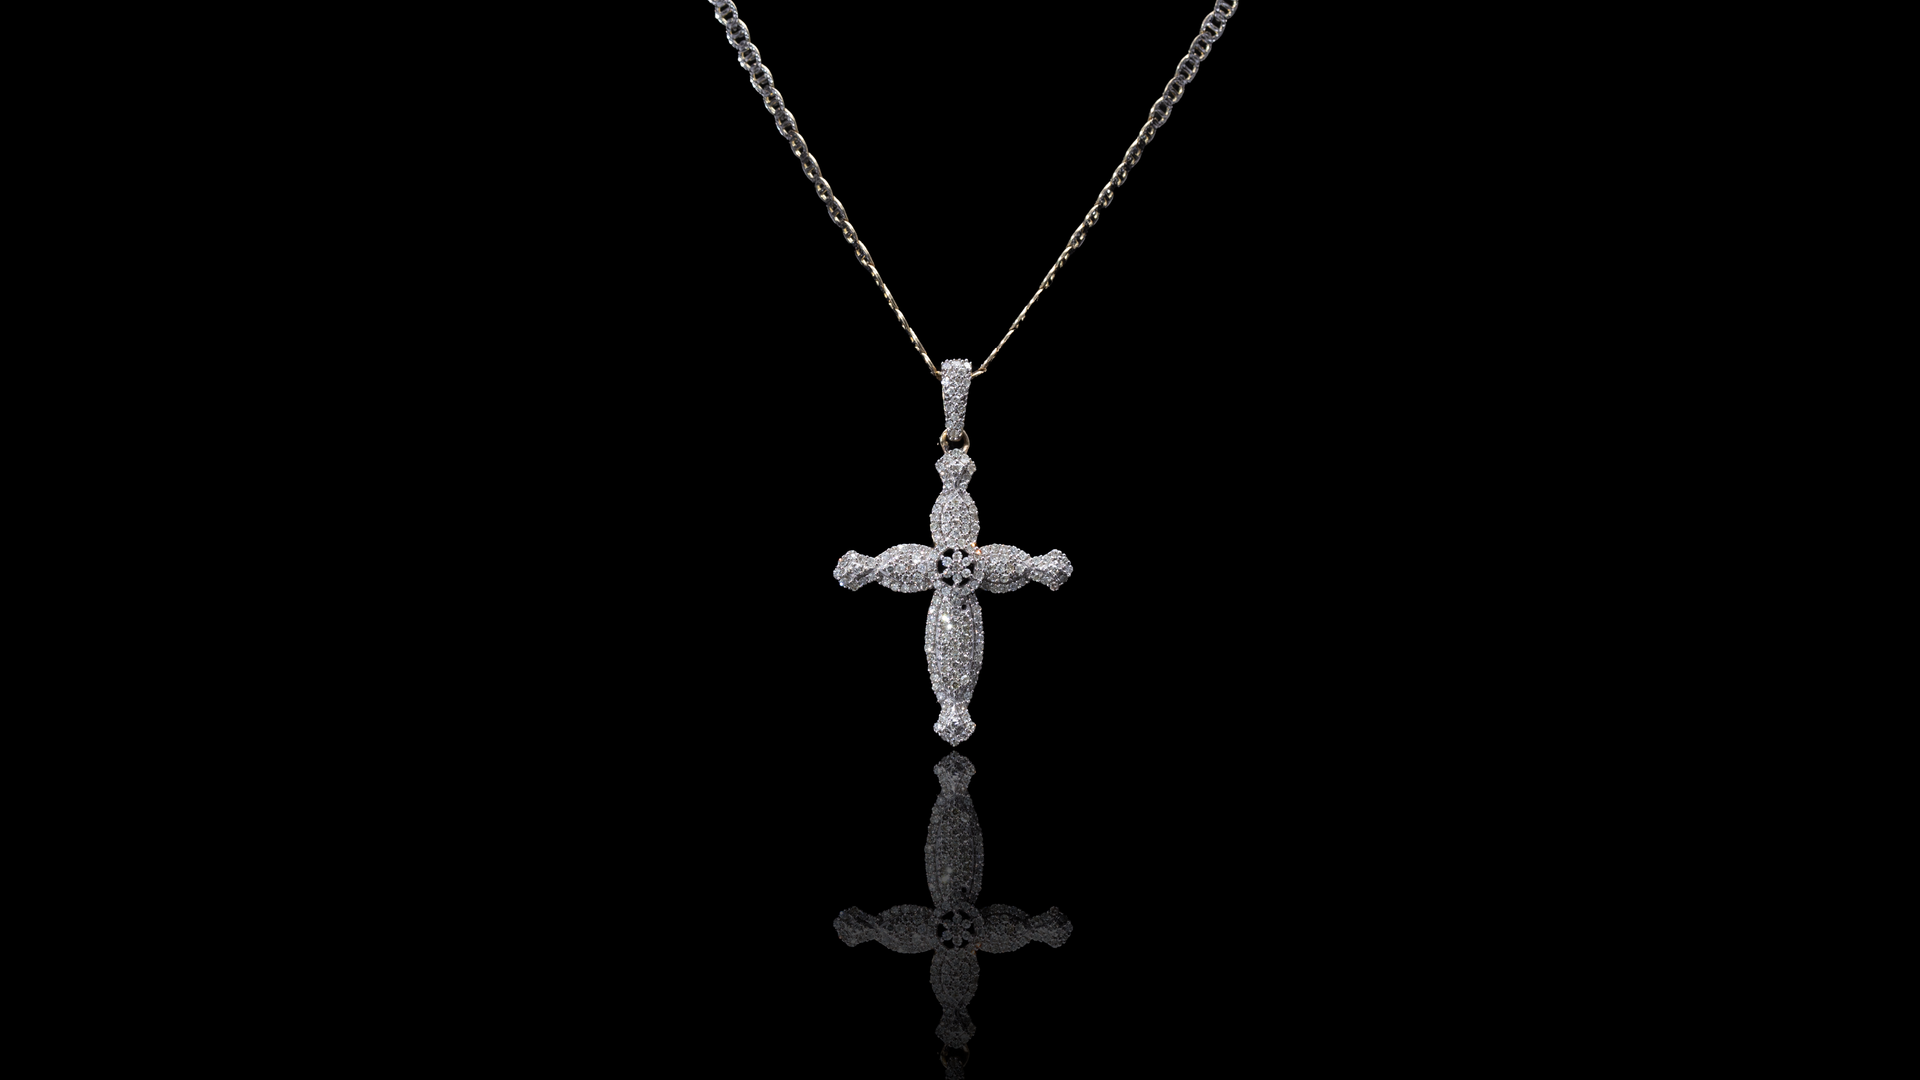 [SPECIAL] 10k/14k Two-Tone Gold Fancy Cross Diamond Necklace